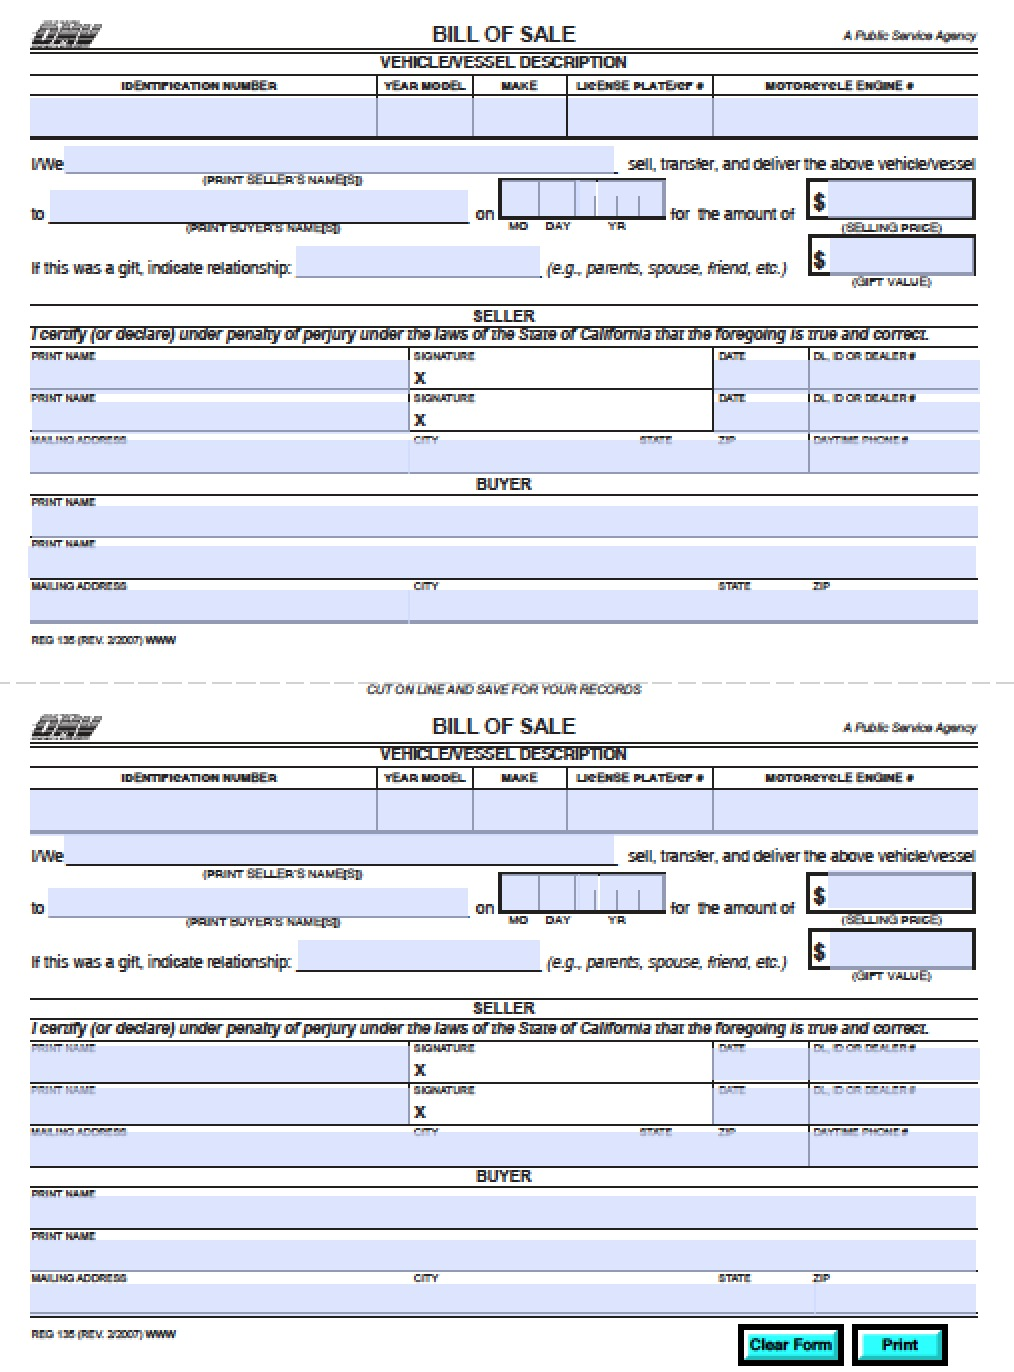 dmv bill of sale form ca Free California DMV Bill of Sale (REG 135) | Vehicle | Boat Form ...